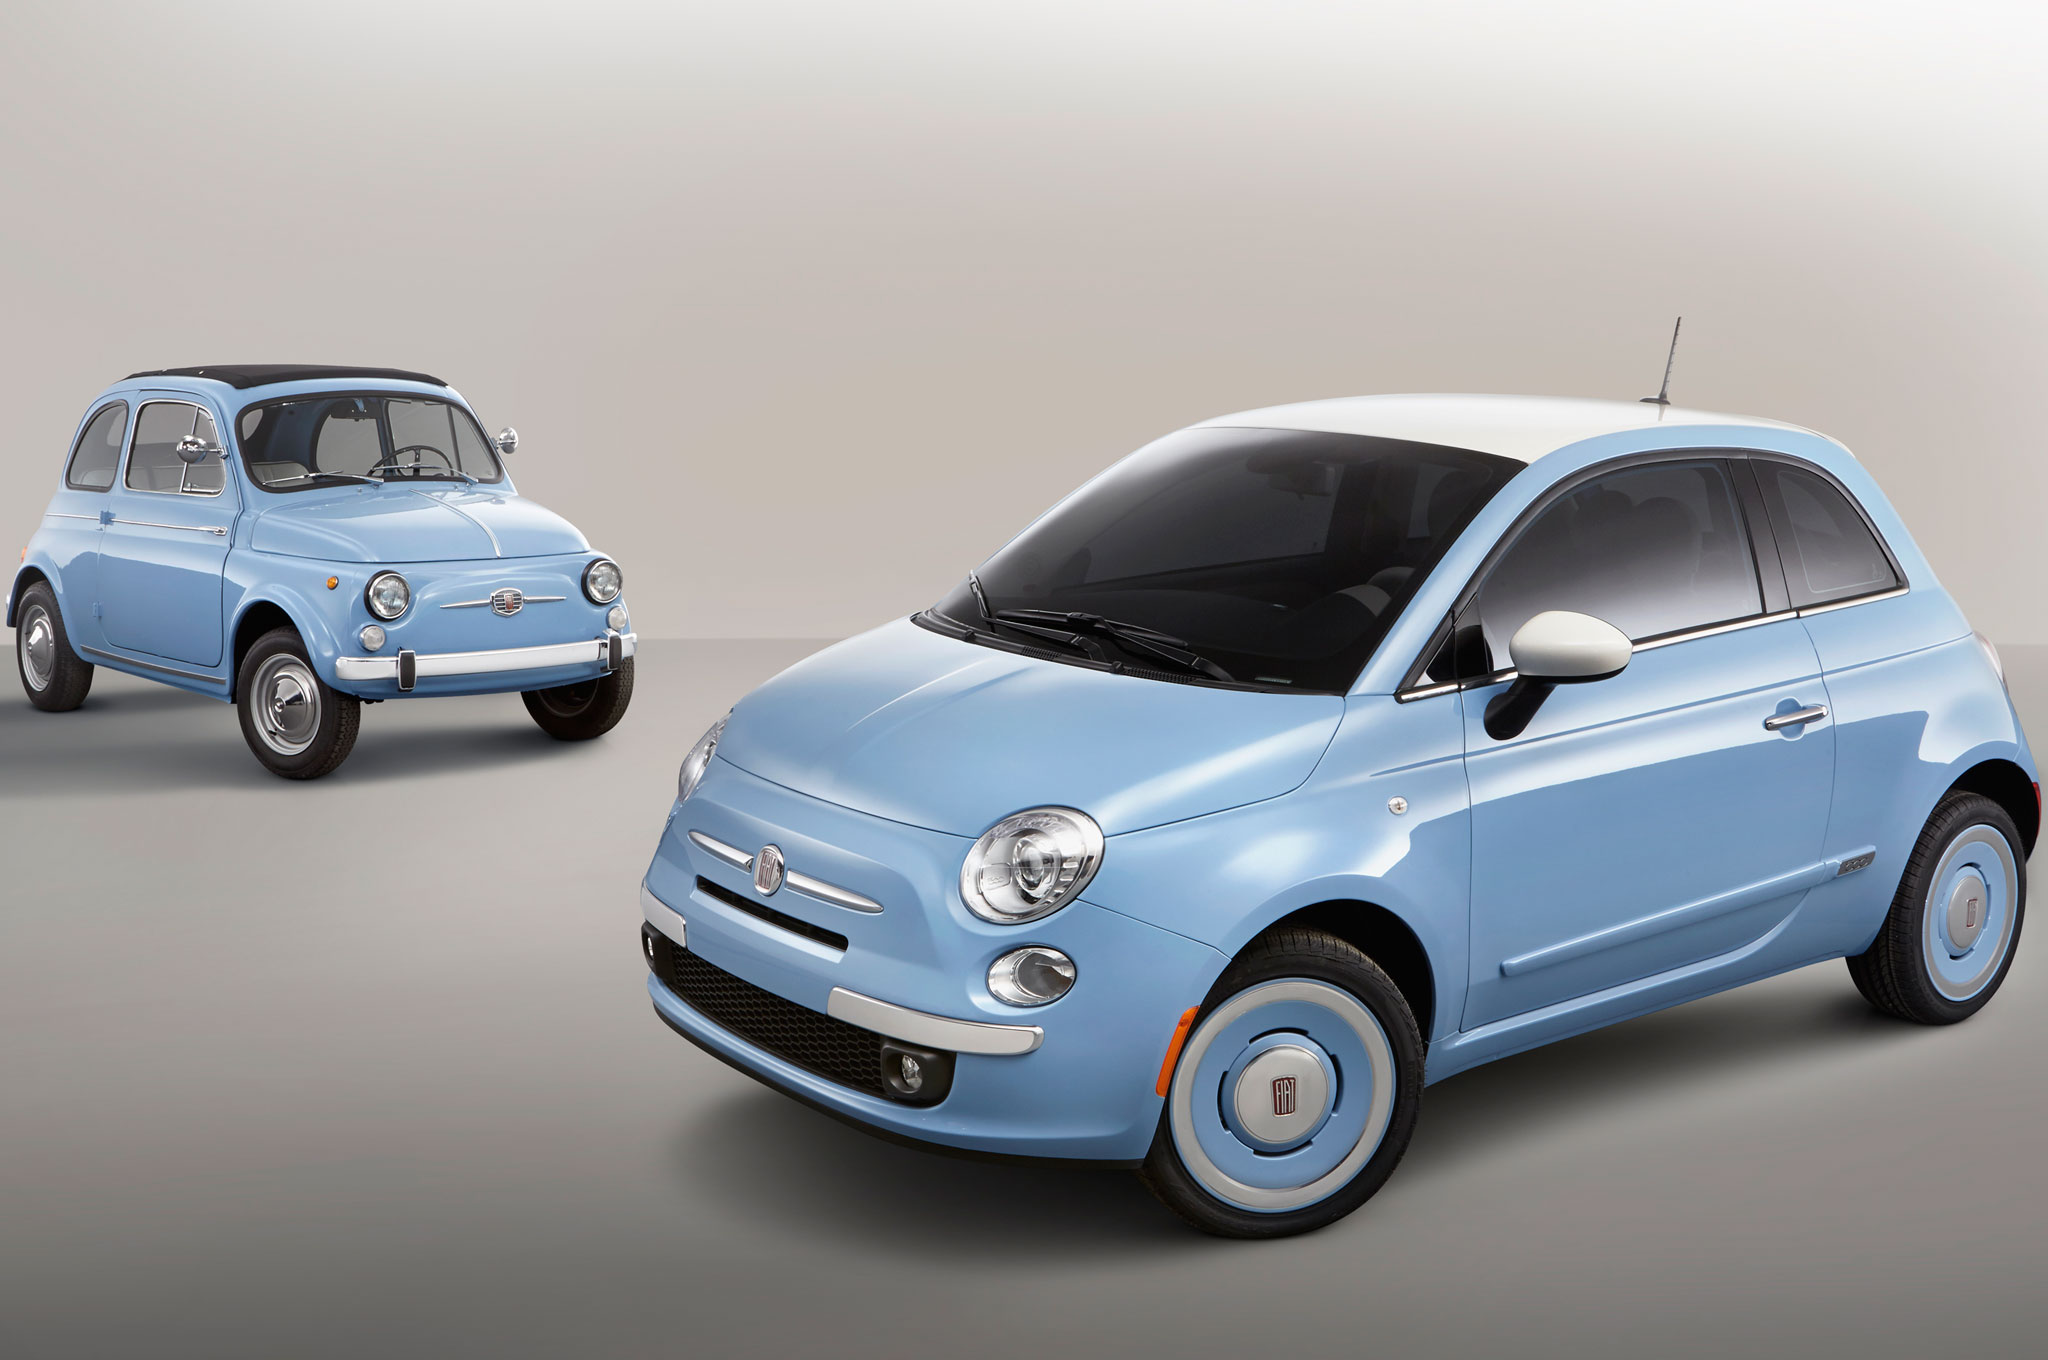 medium resolution of 2014 fiat 500 1957 edition celebrates nameplate s 57th anniversary